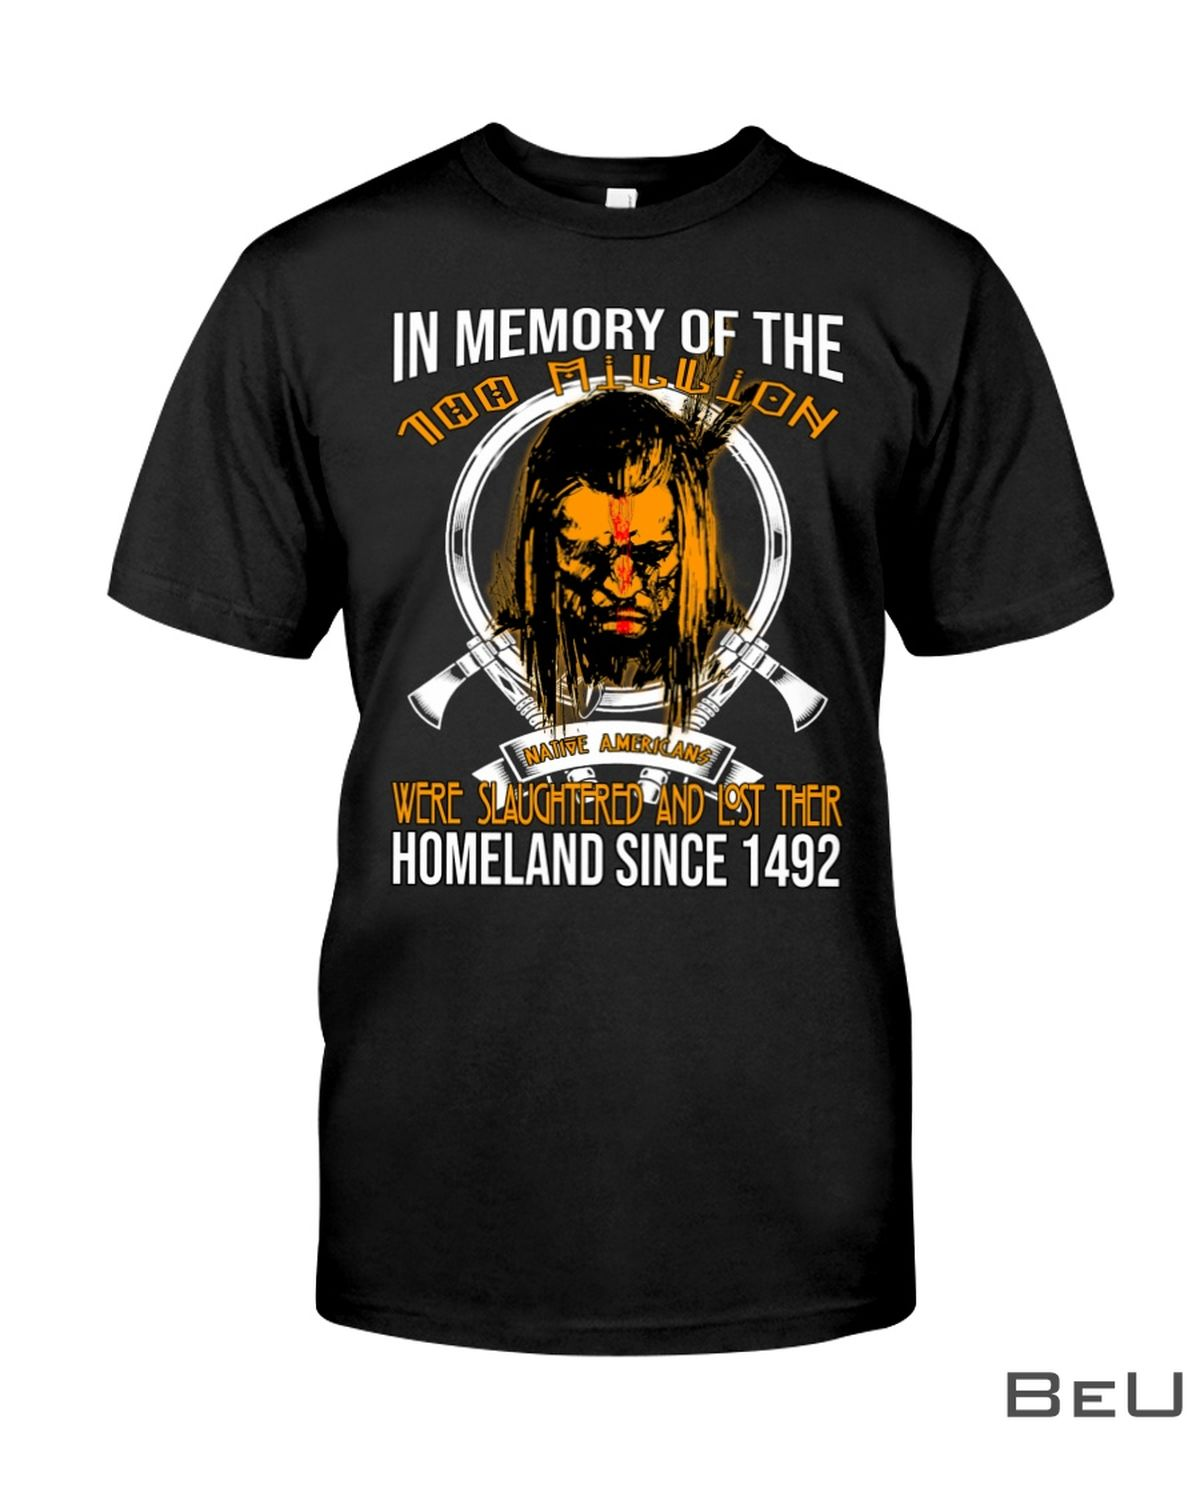 In Memory Of The Too Milion Were Slaughtered And Lost Their Homeland Since 1492 Shirt